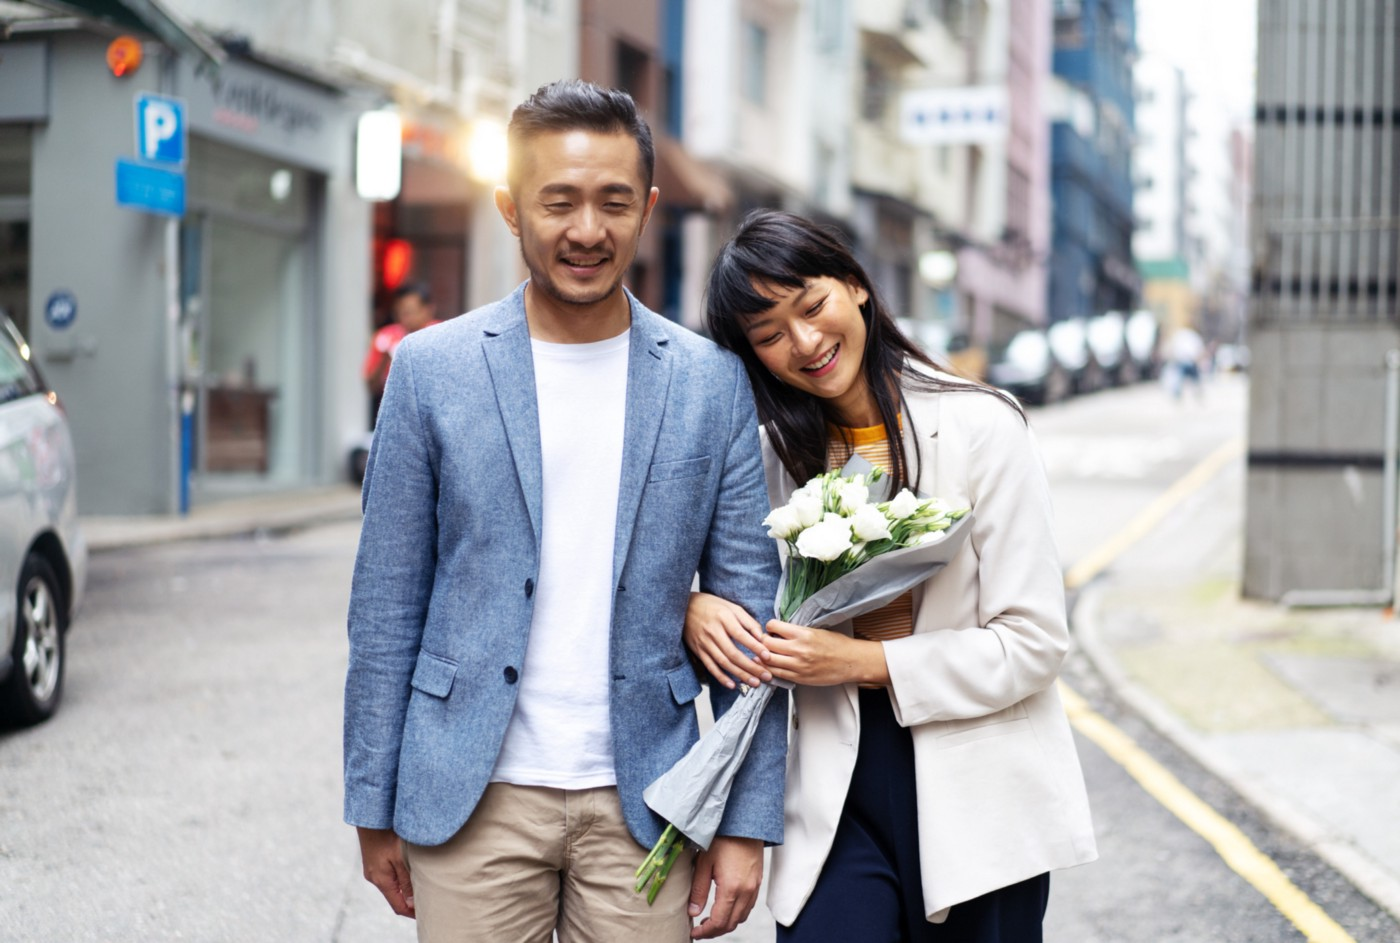 A photo of a happy Asian couple walking down the street. The woman is holding a bouquet of white flowers.